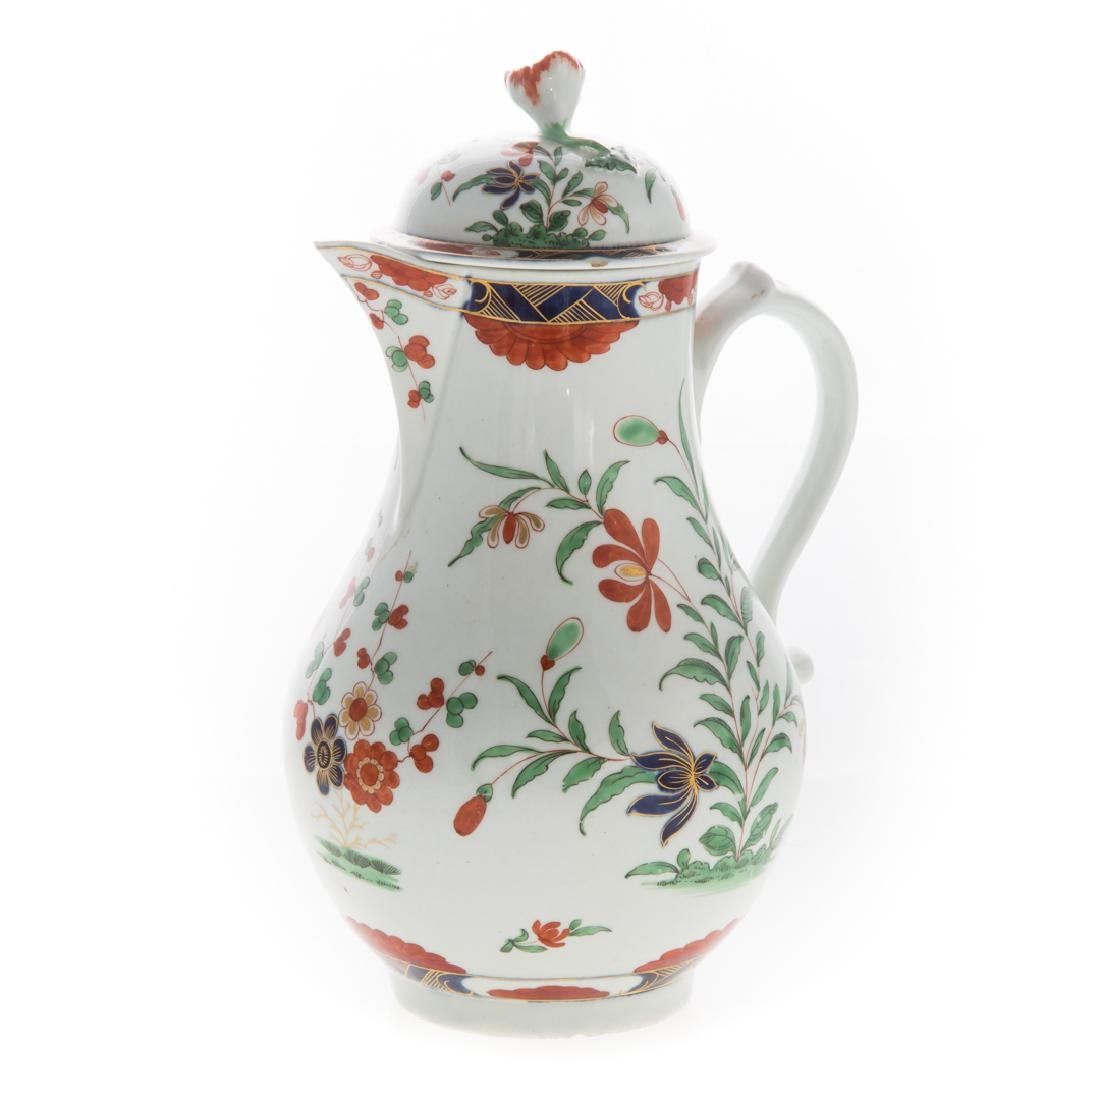 Worcester pearlware chocolate pot - 3